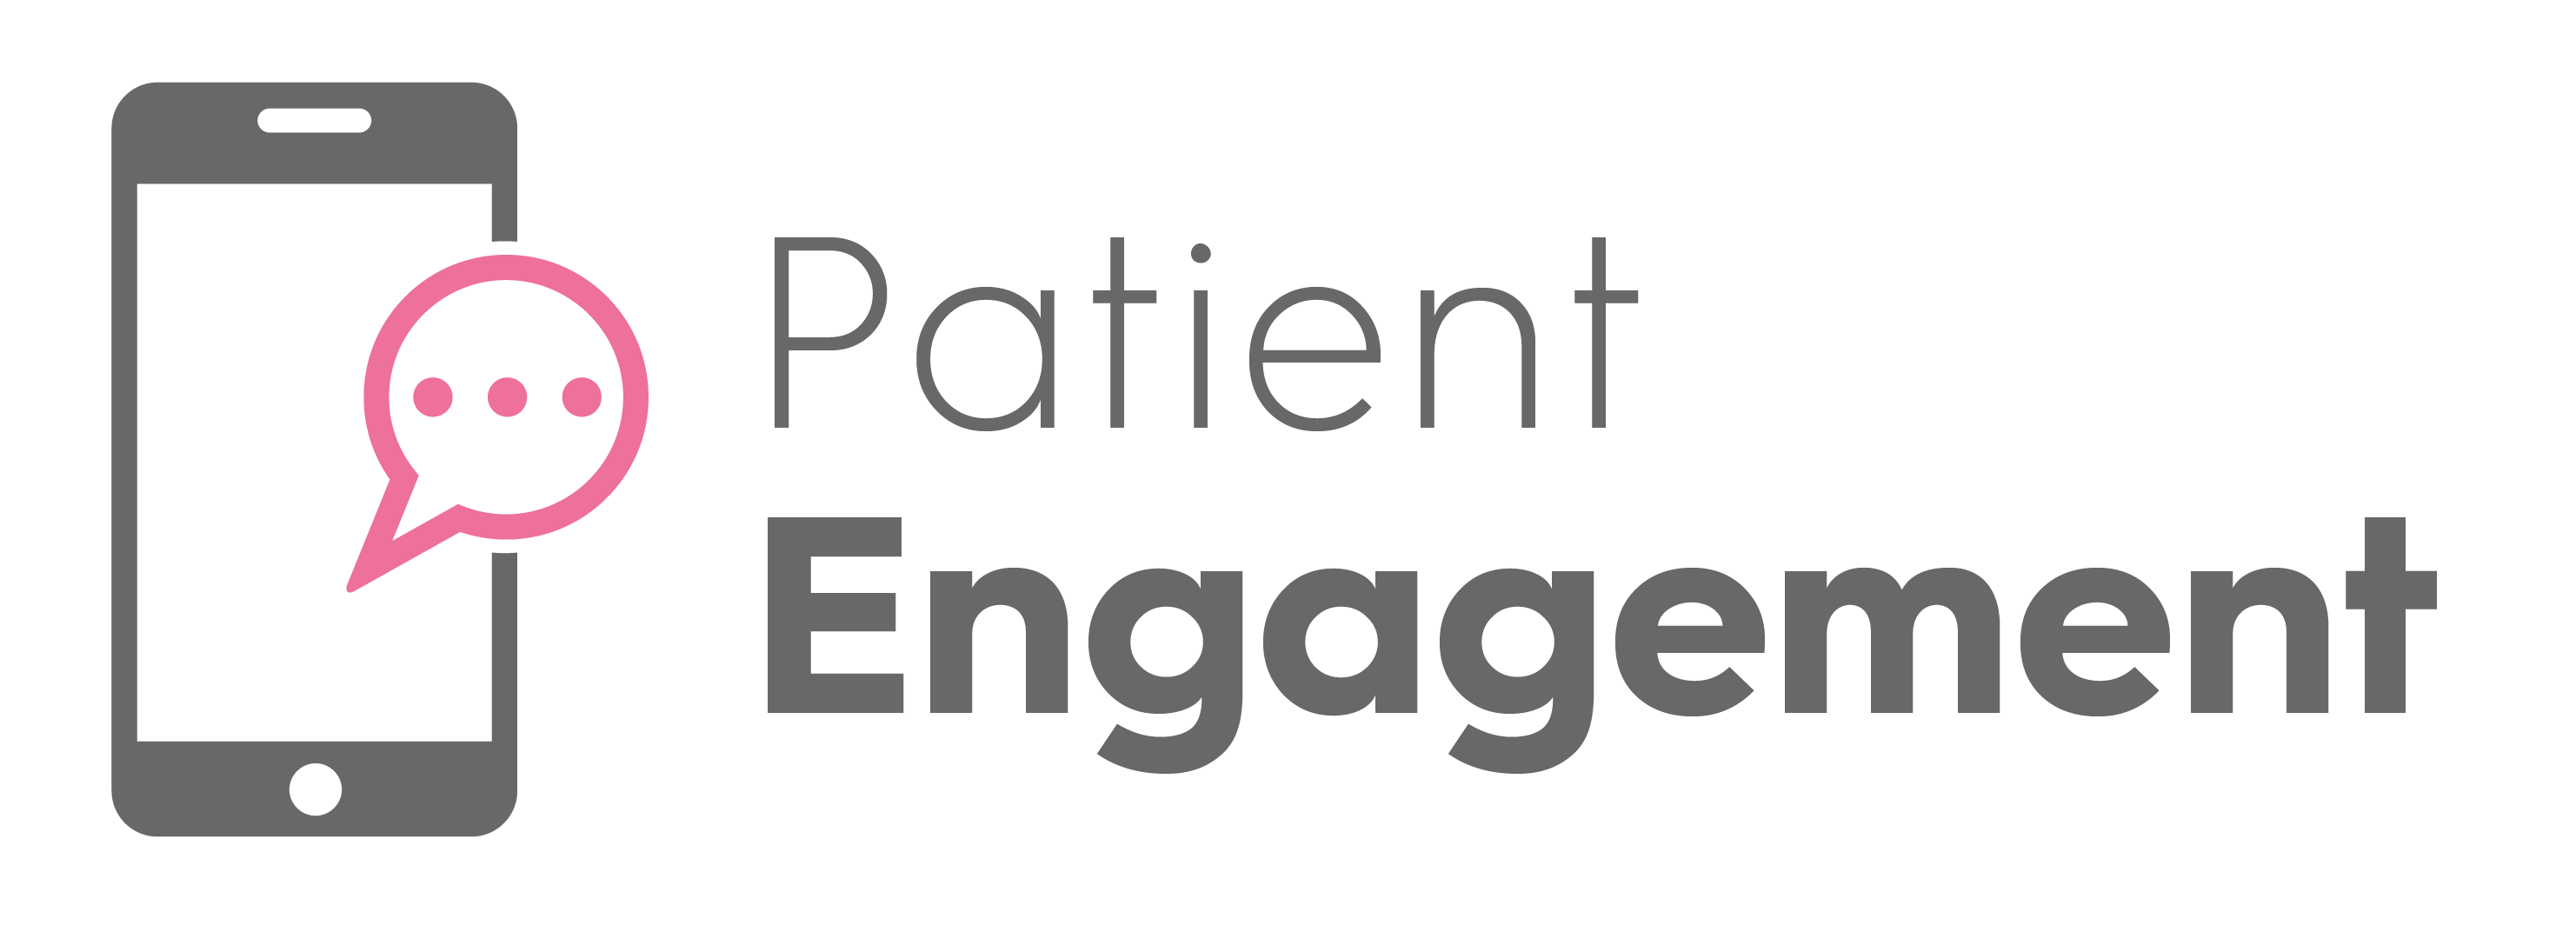 CHS_Patient engagement logo